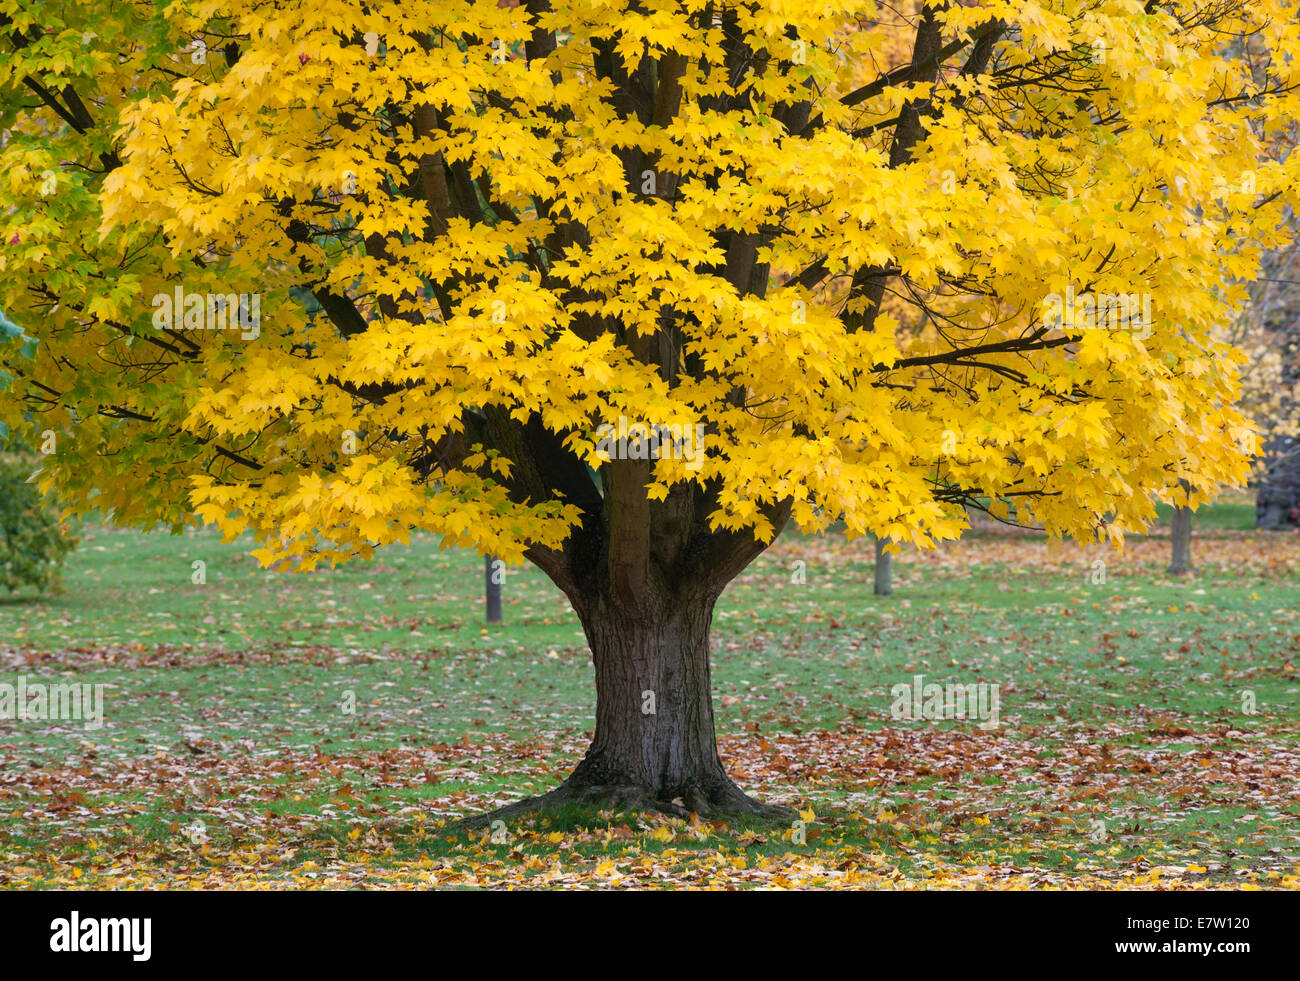 Royal Botanic Gardens, Kew, London.  A yellow form of Acer rubrum (red maple or swamp maple) looks spectacular in autumn Stock Photo